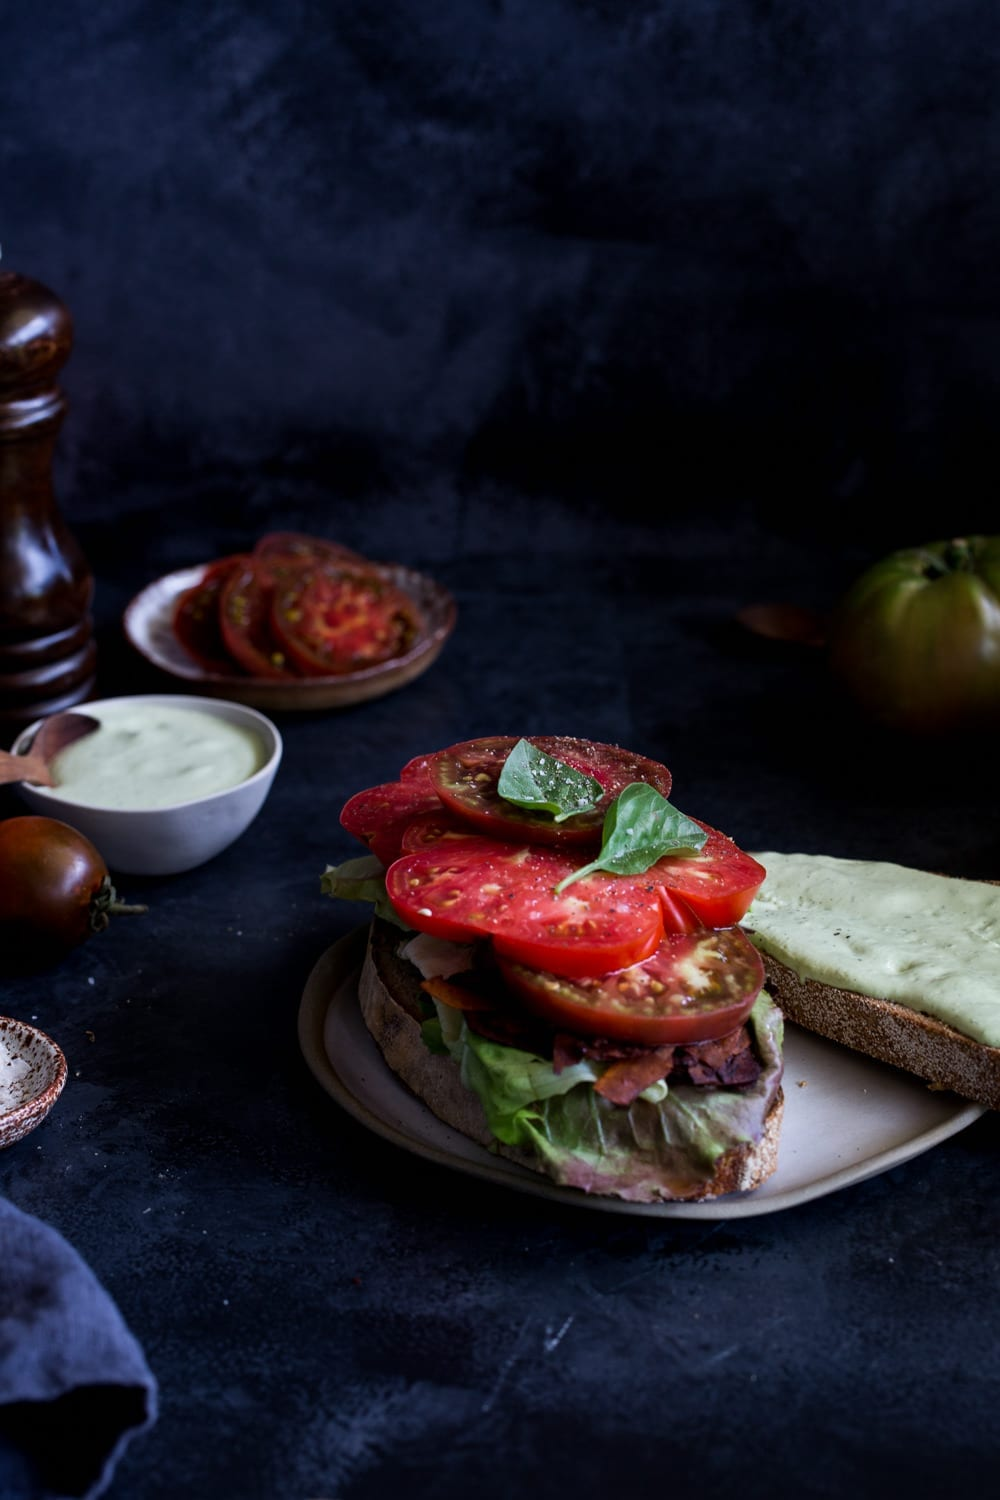 Vegan Heirloom Tomato BLAT with Coconut Bacon + Basil Mayo